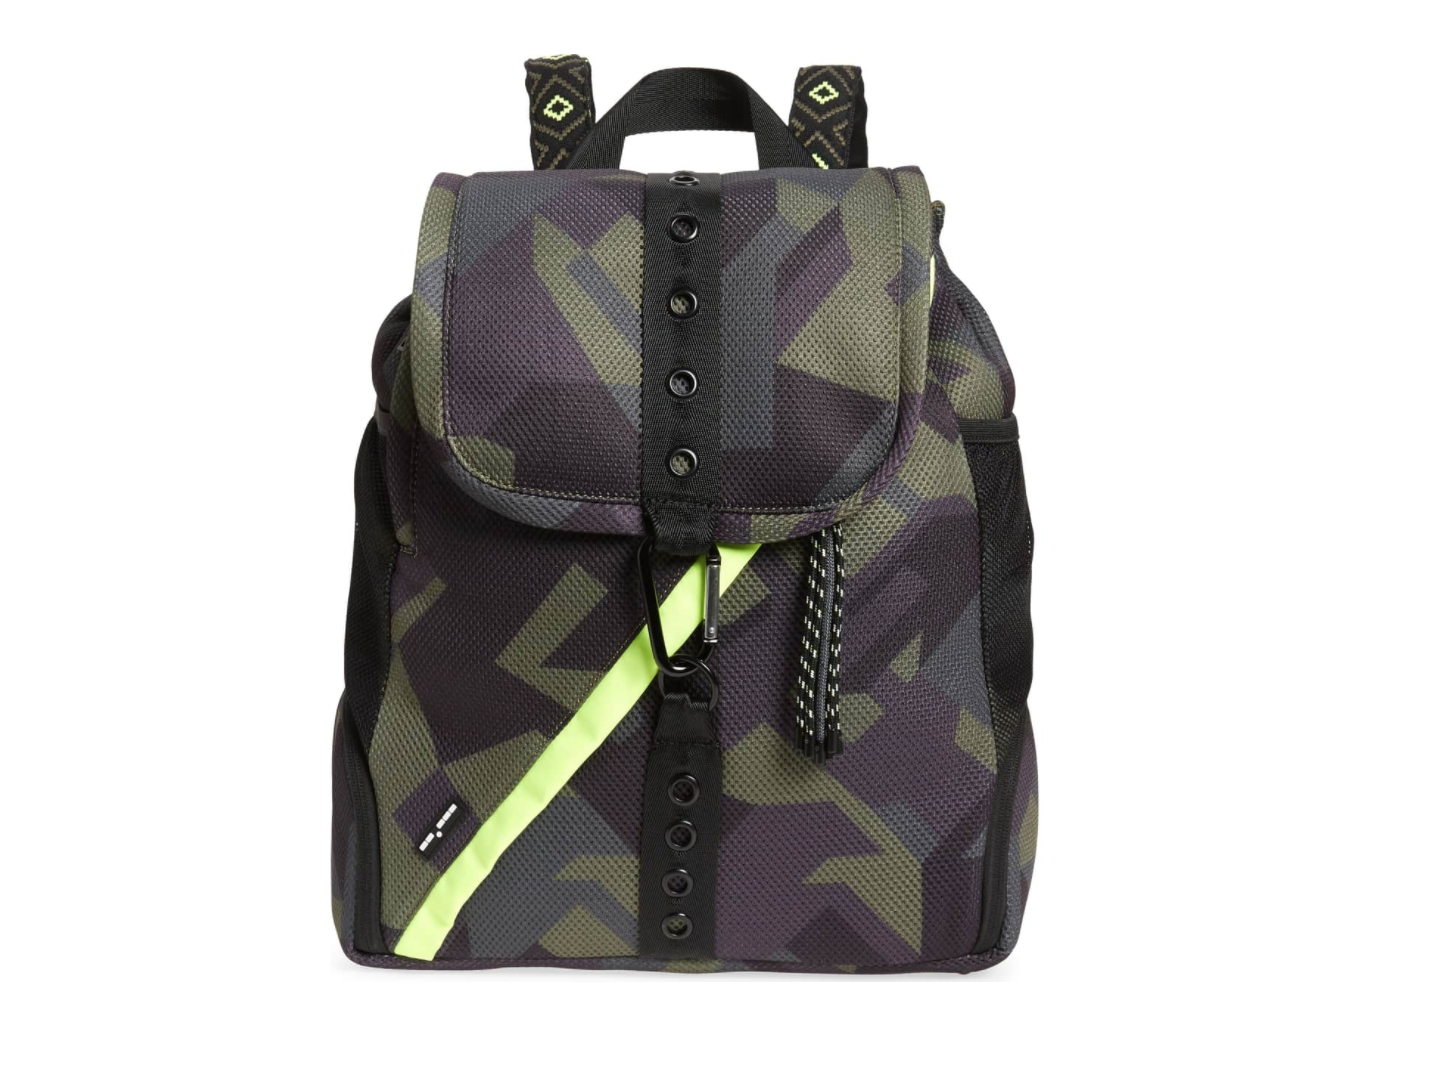 9 Best Gym Bags For Men 2018 — Top Backpacks And Duffle Bags 9f18e44ca0f0